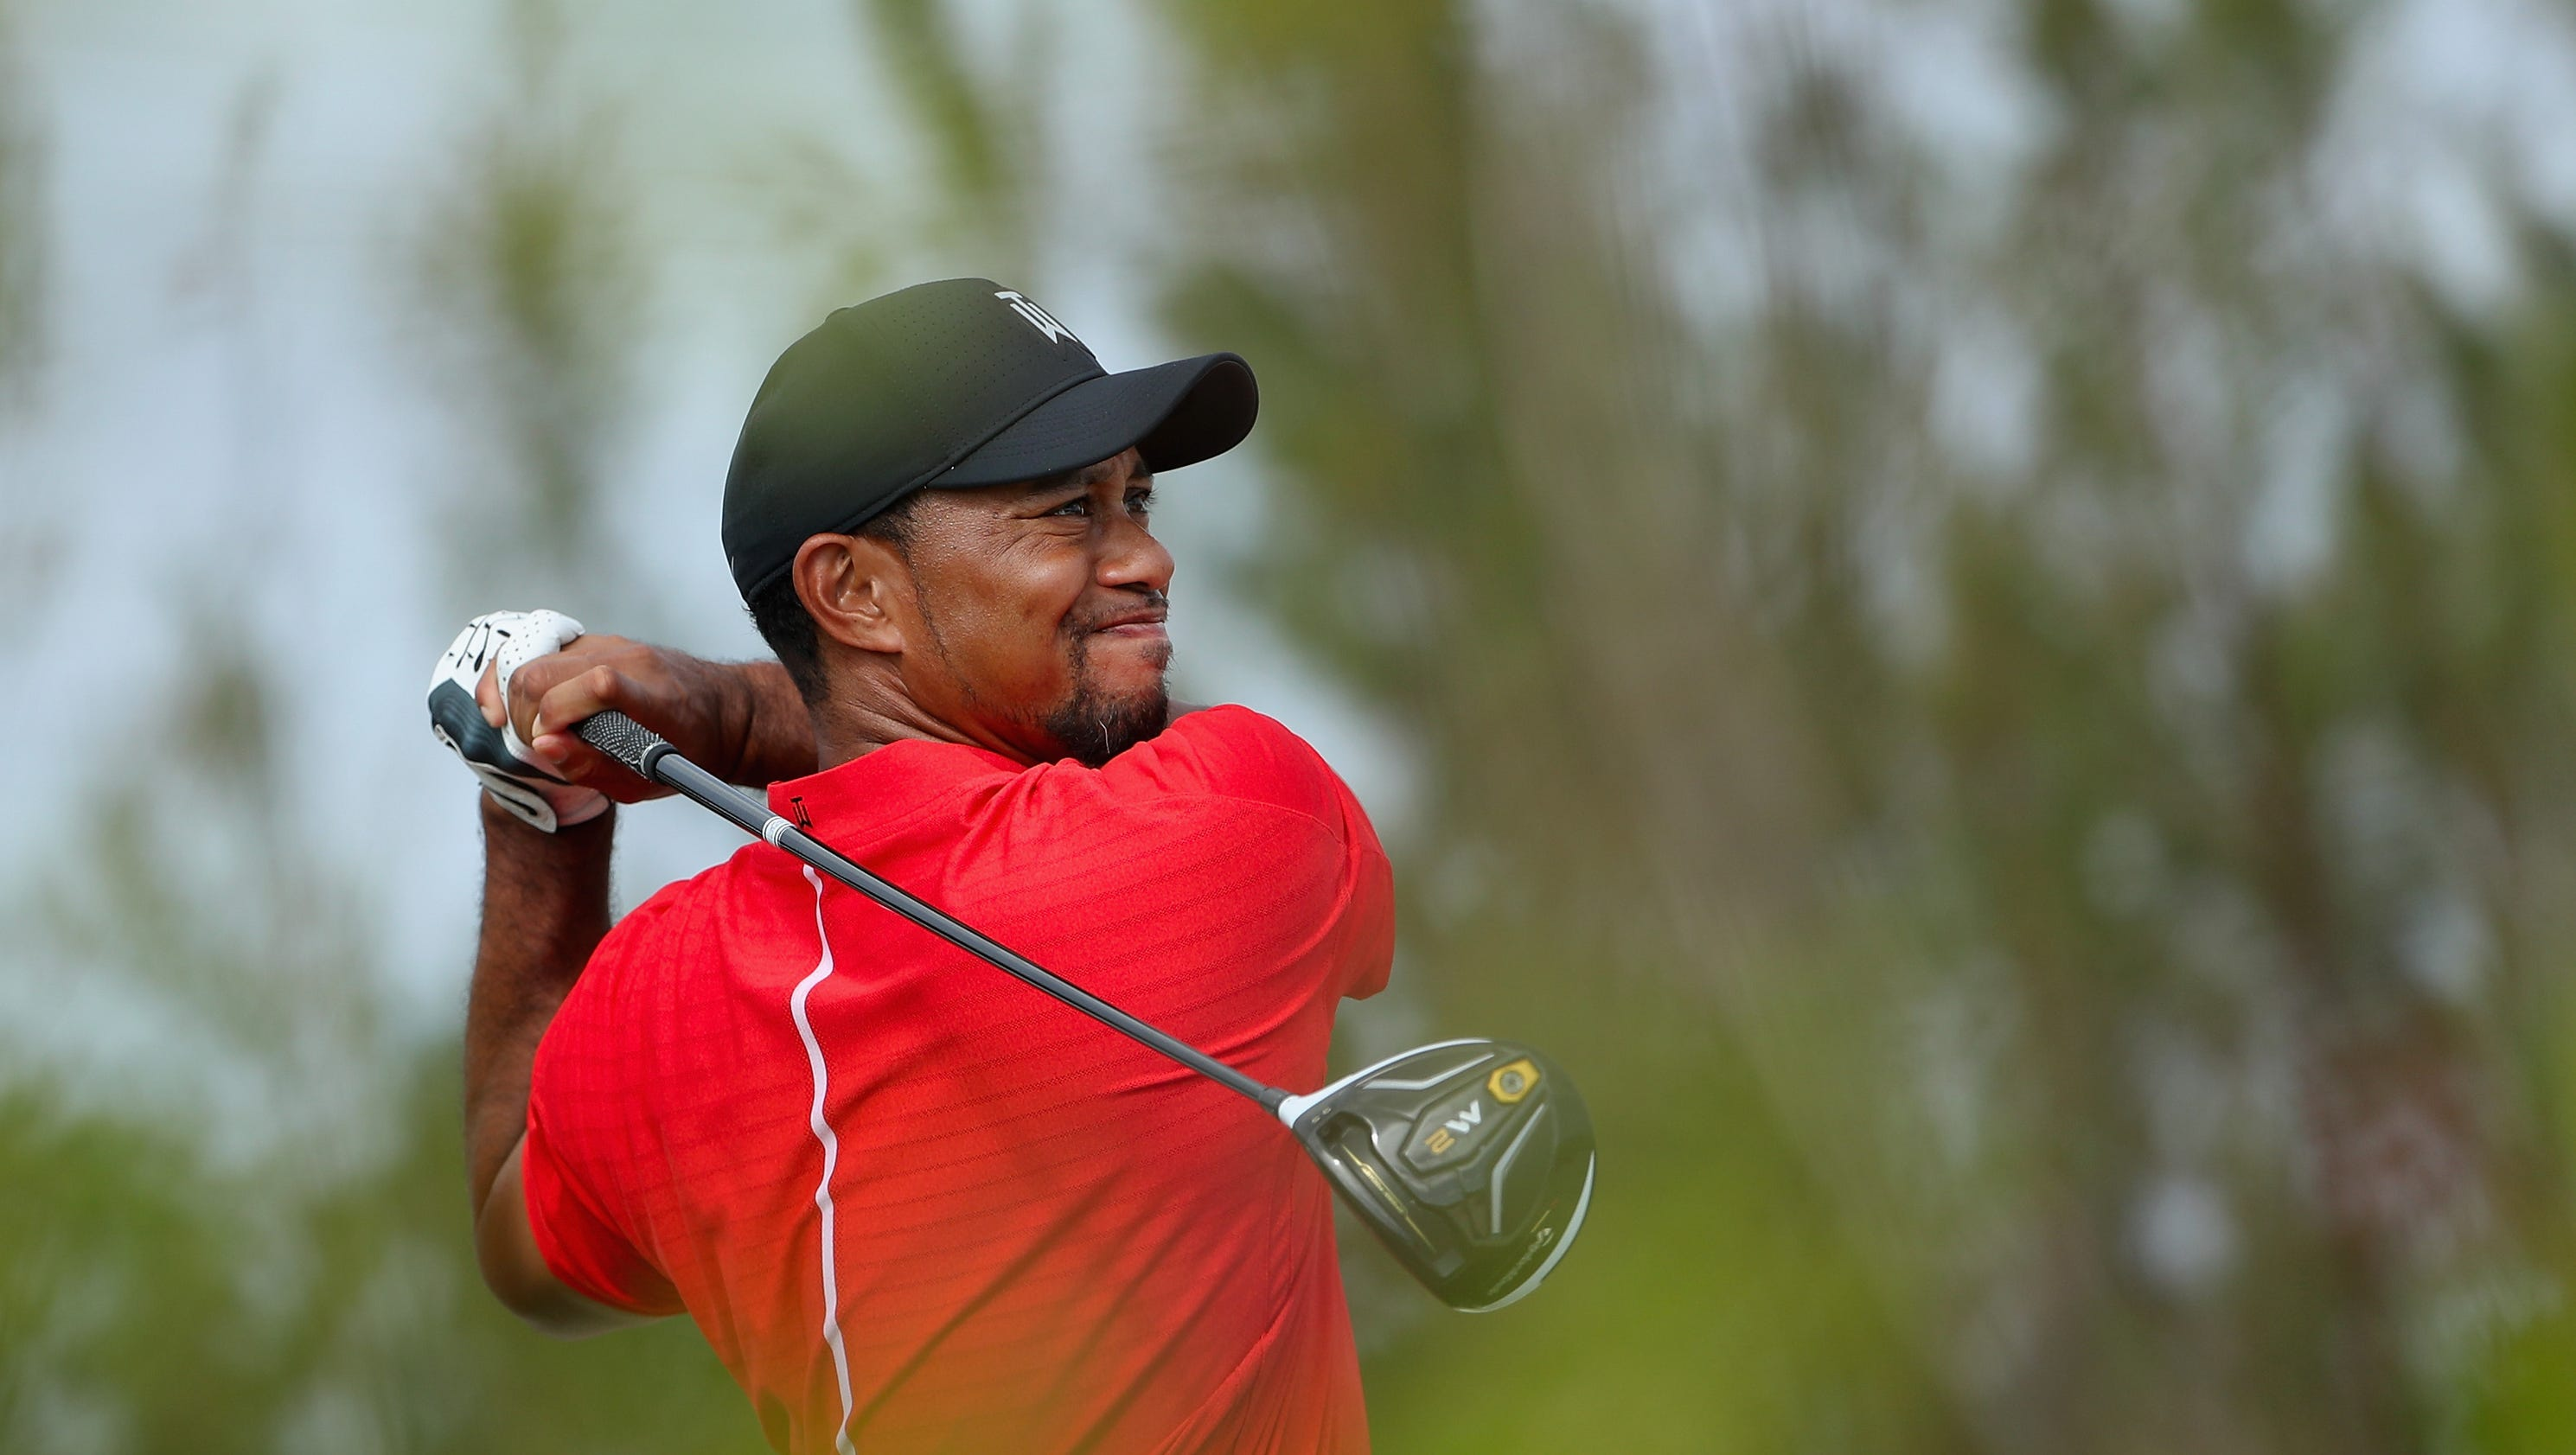 Tiger Woods' Return Creates Buzz, But Will He Win Again?